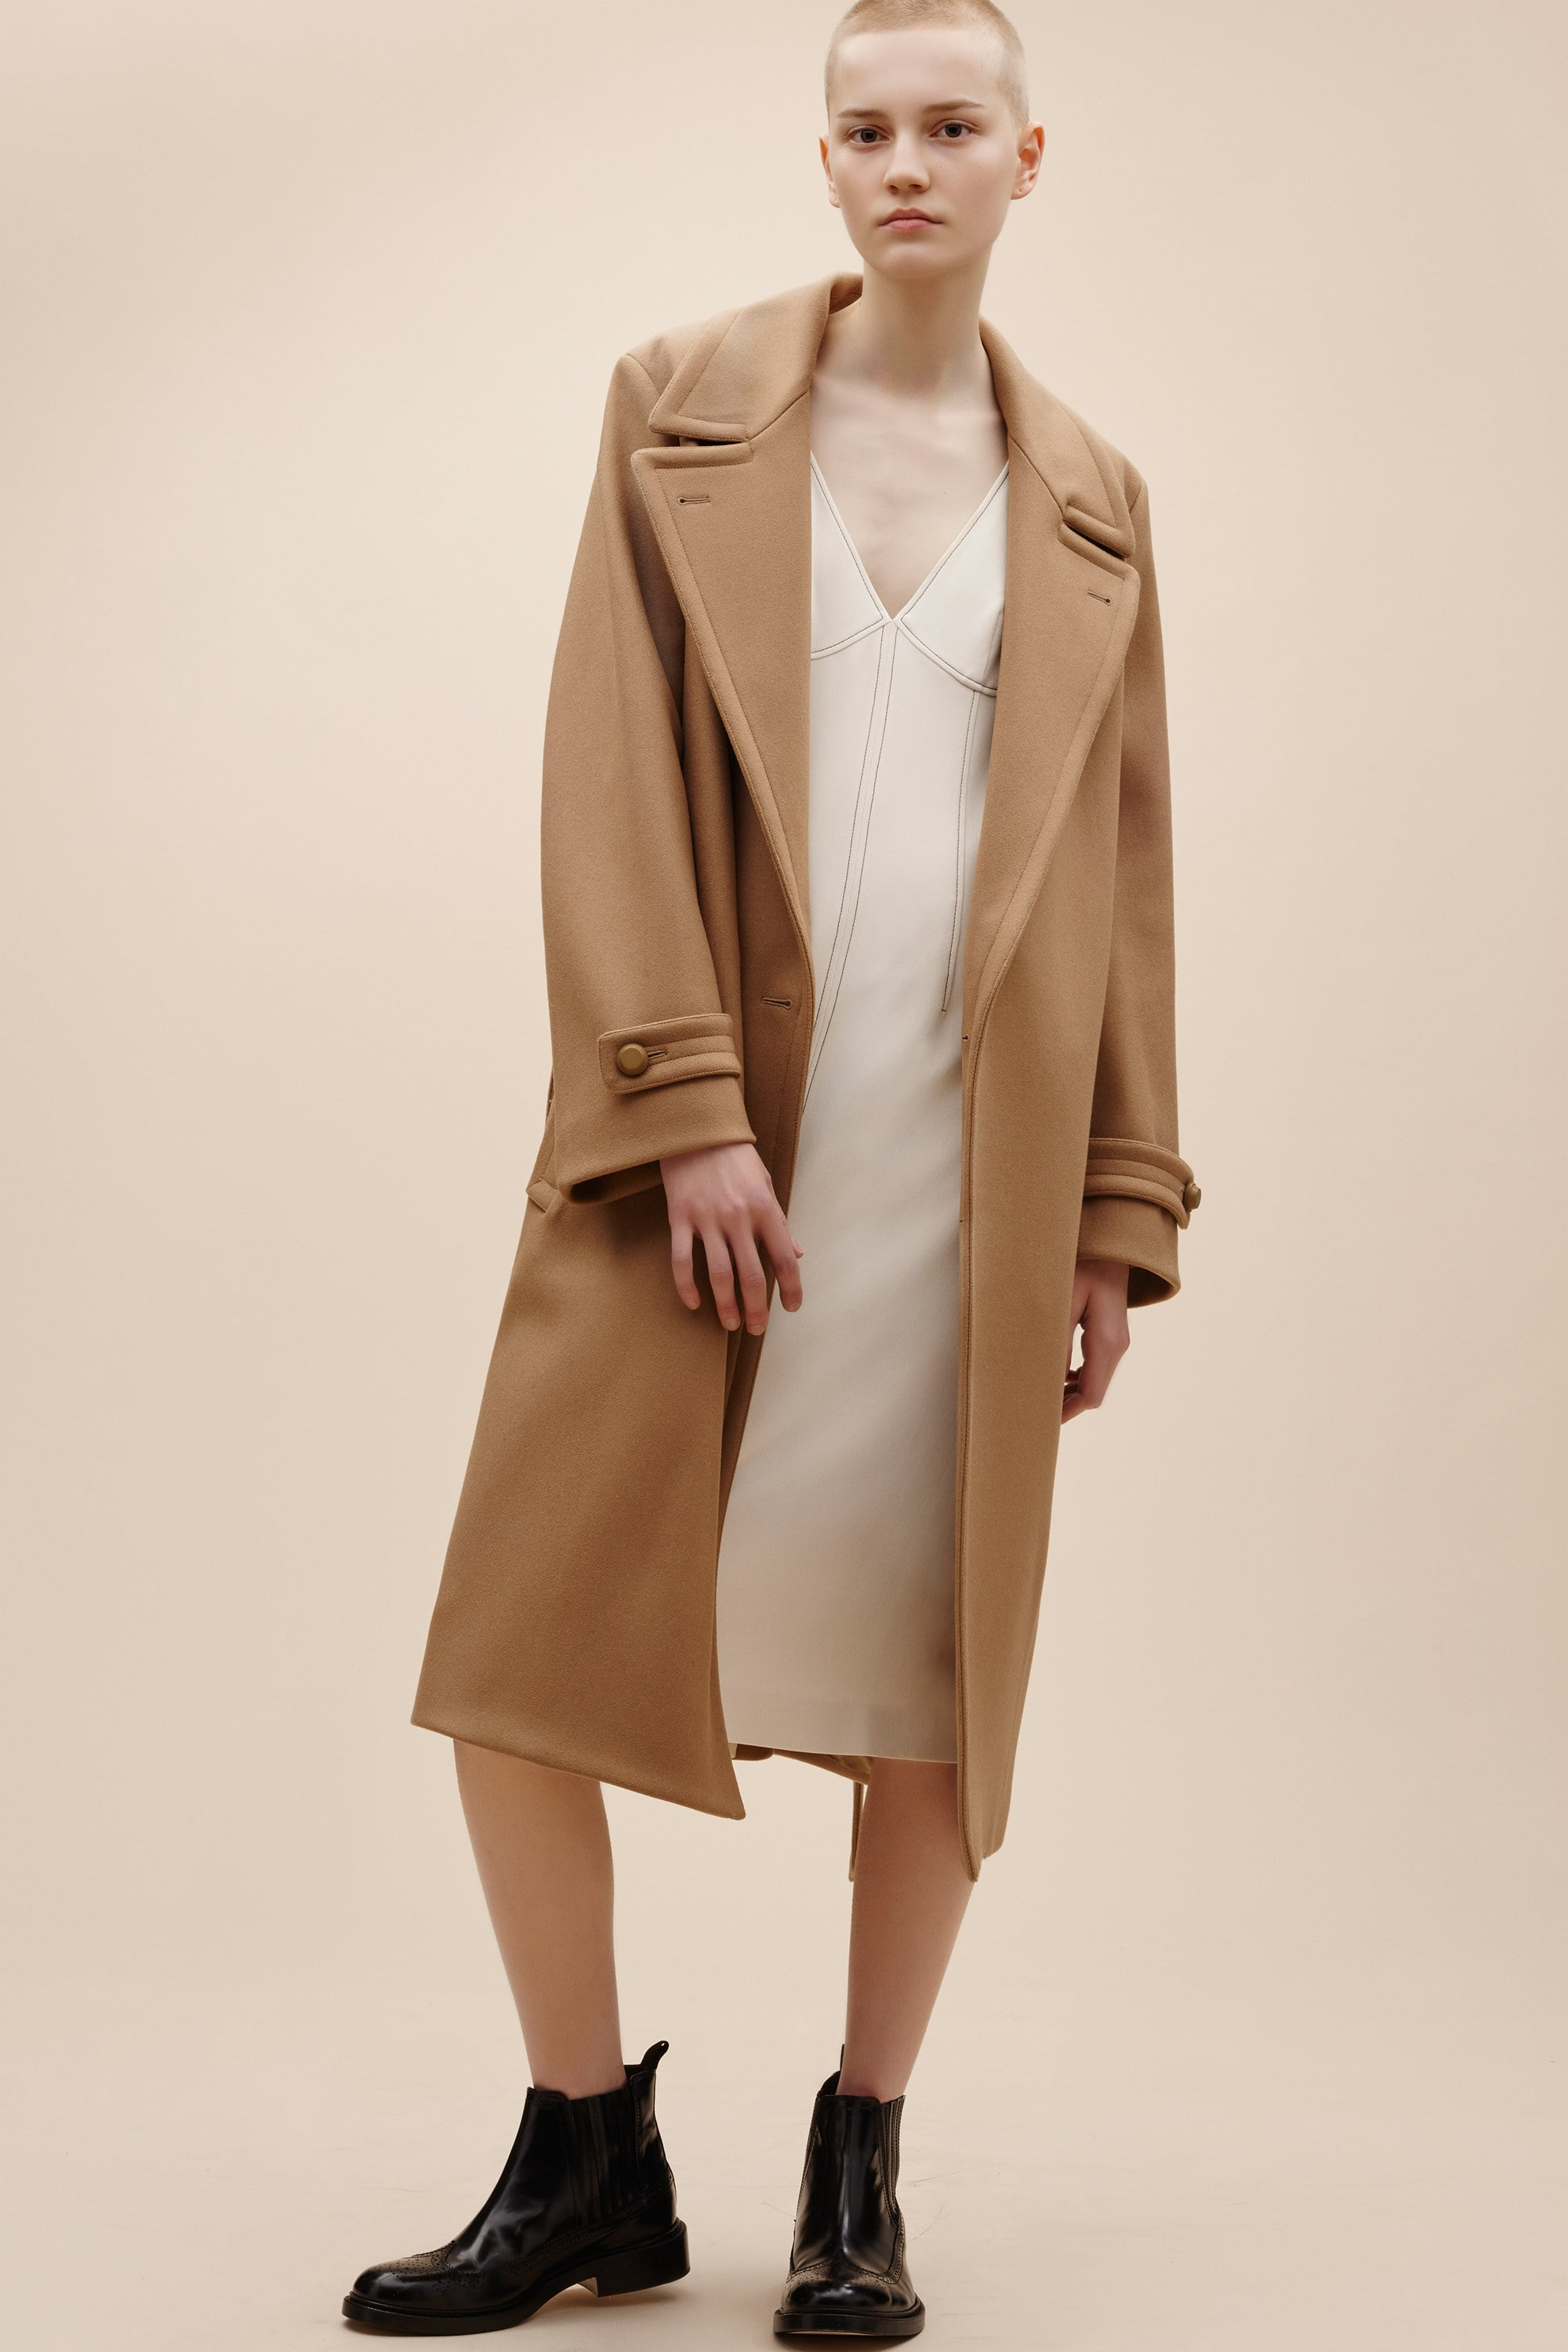 joseph-pre-fall-2016-lookbook-13.jpg